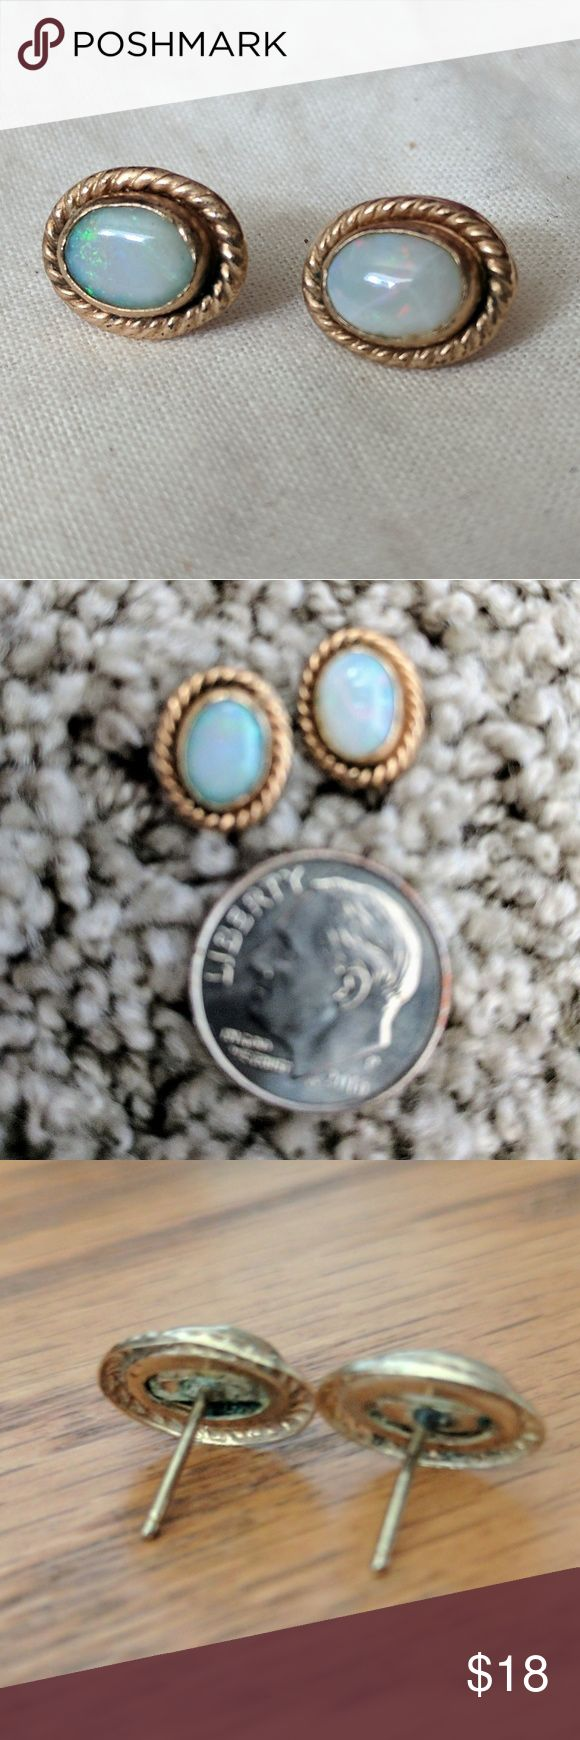 Vintage opal stud earrings I believe these are set in gold but not certain.  Found in a relative's home. There are so.e imperfections in the stones but still very pretty.  Backs are missing but I will provide plastic backers.  Backs show some tarnish.  Selling these for a good price because I am not certain of their value. Vintage Jewelry Earrings